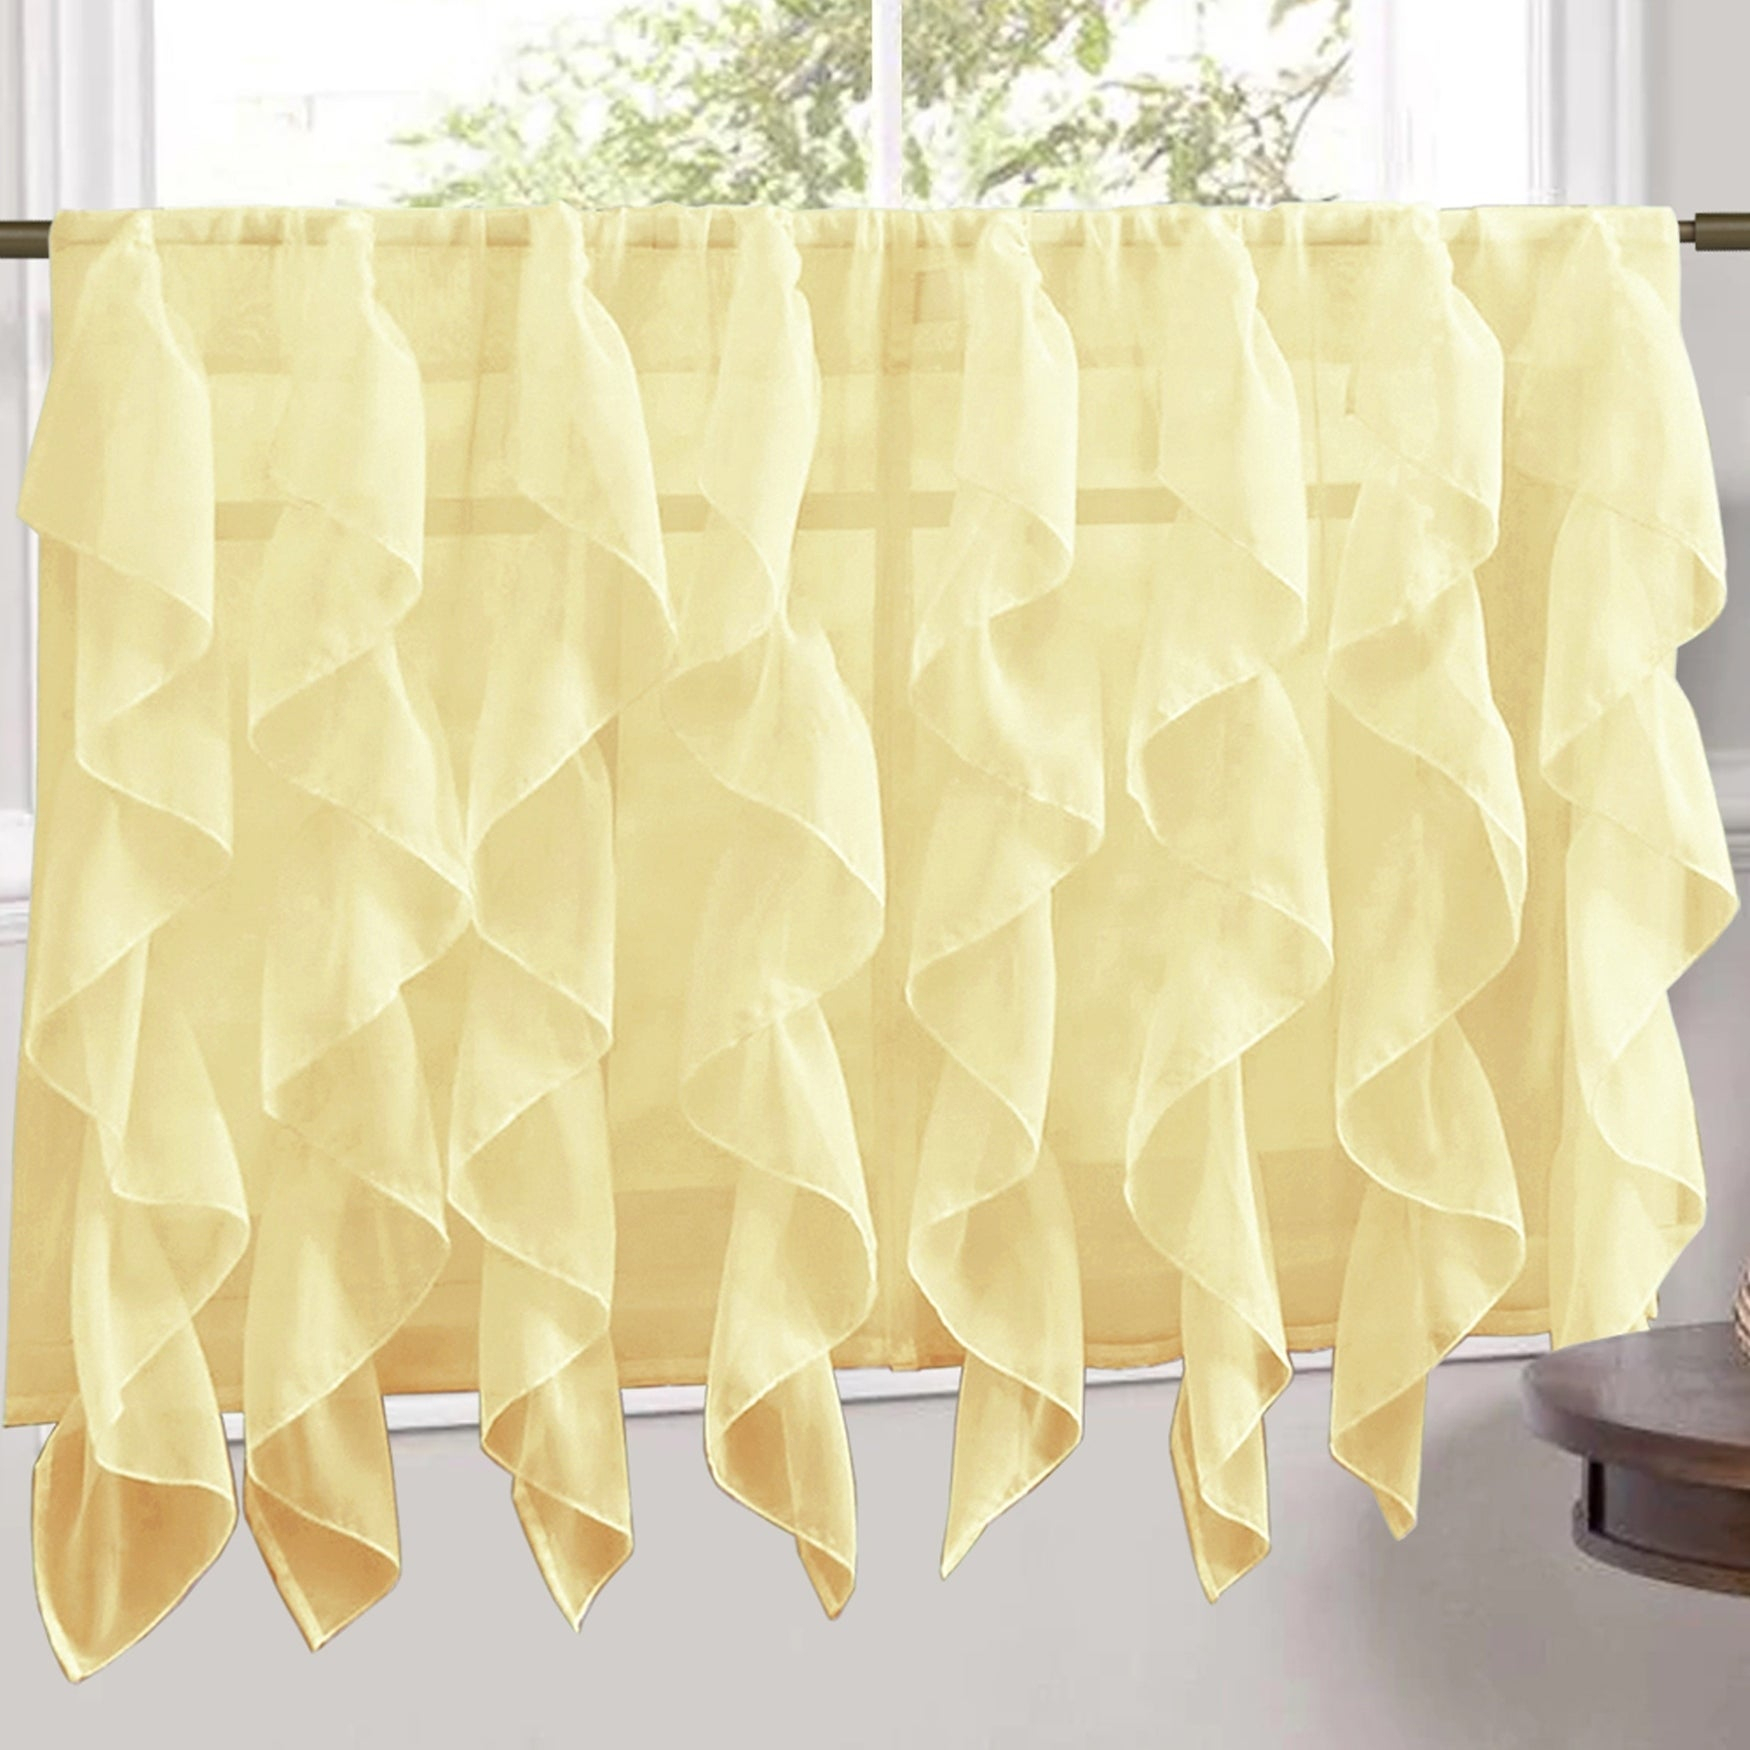 Sweet Home Collection Maize Vertical Ruffled Waterfall Valance And Curtain  Tiers regarding Maize Vertical Ruffled Waterfall Valance and Curtain Tiers (Image 15 of 20)